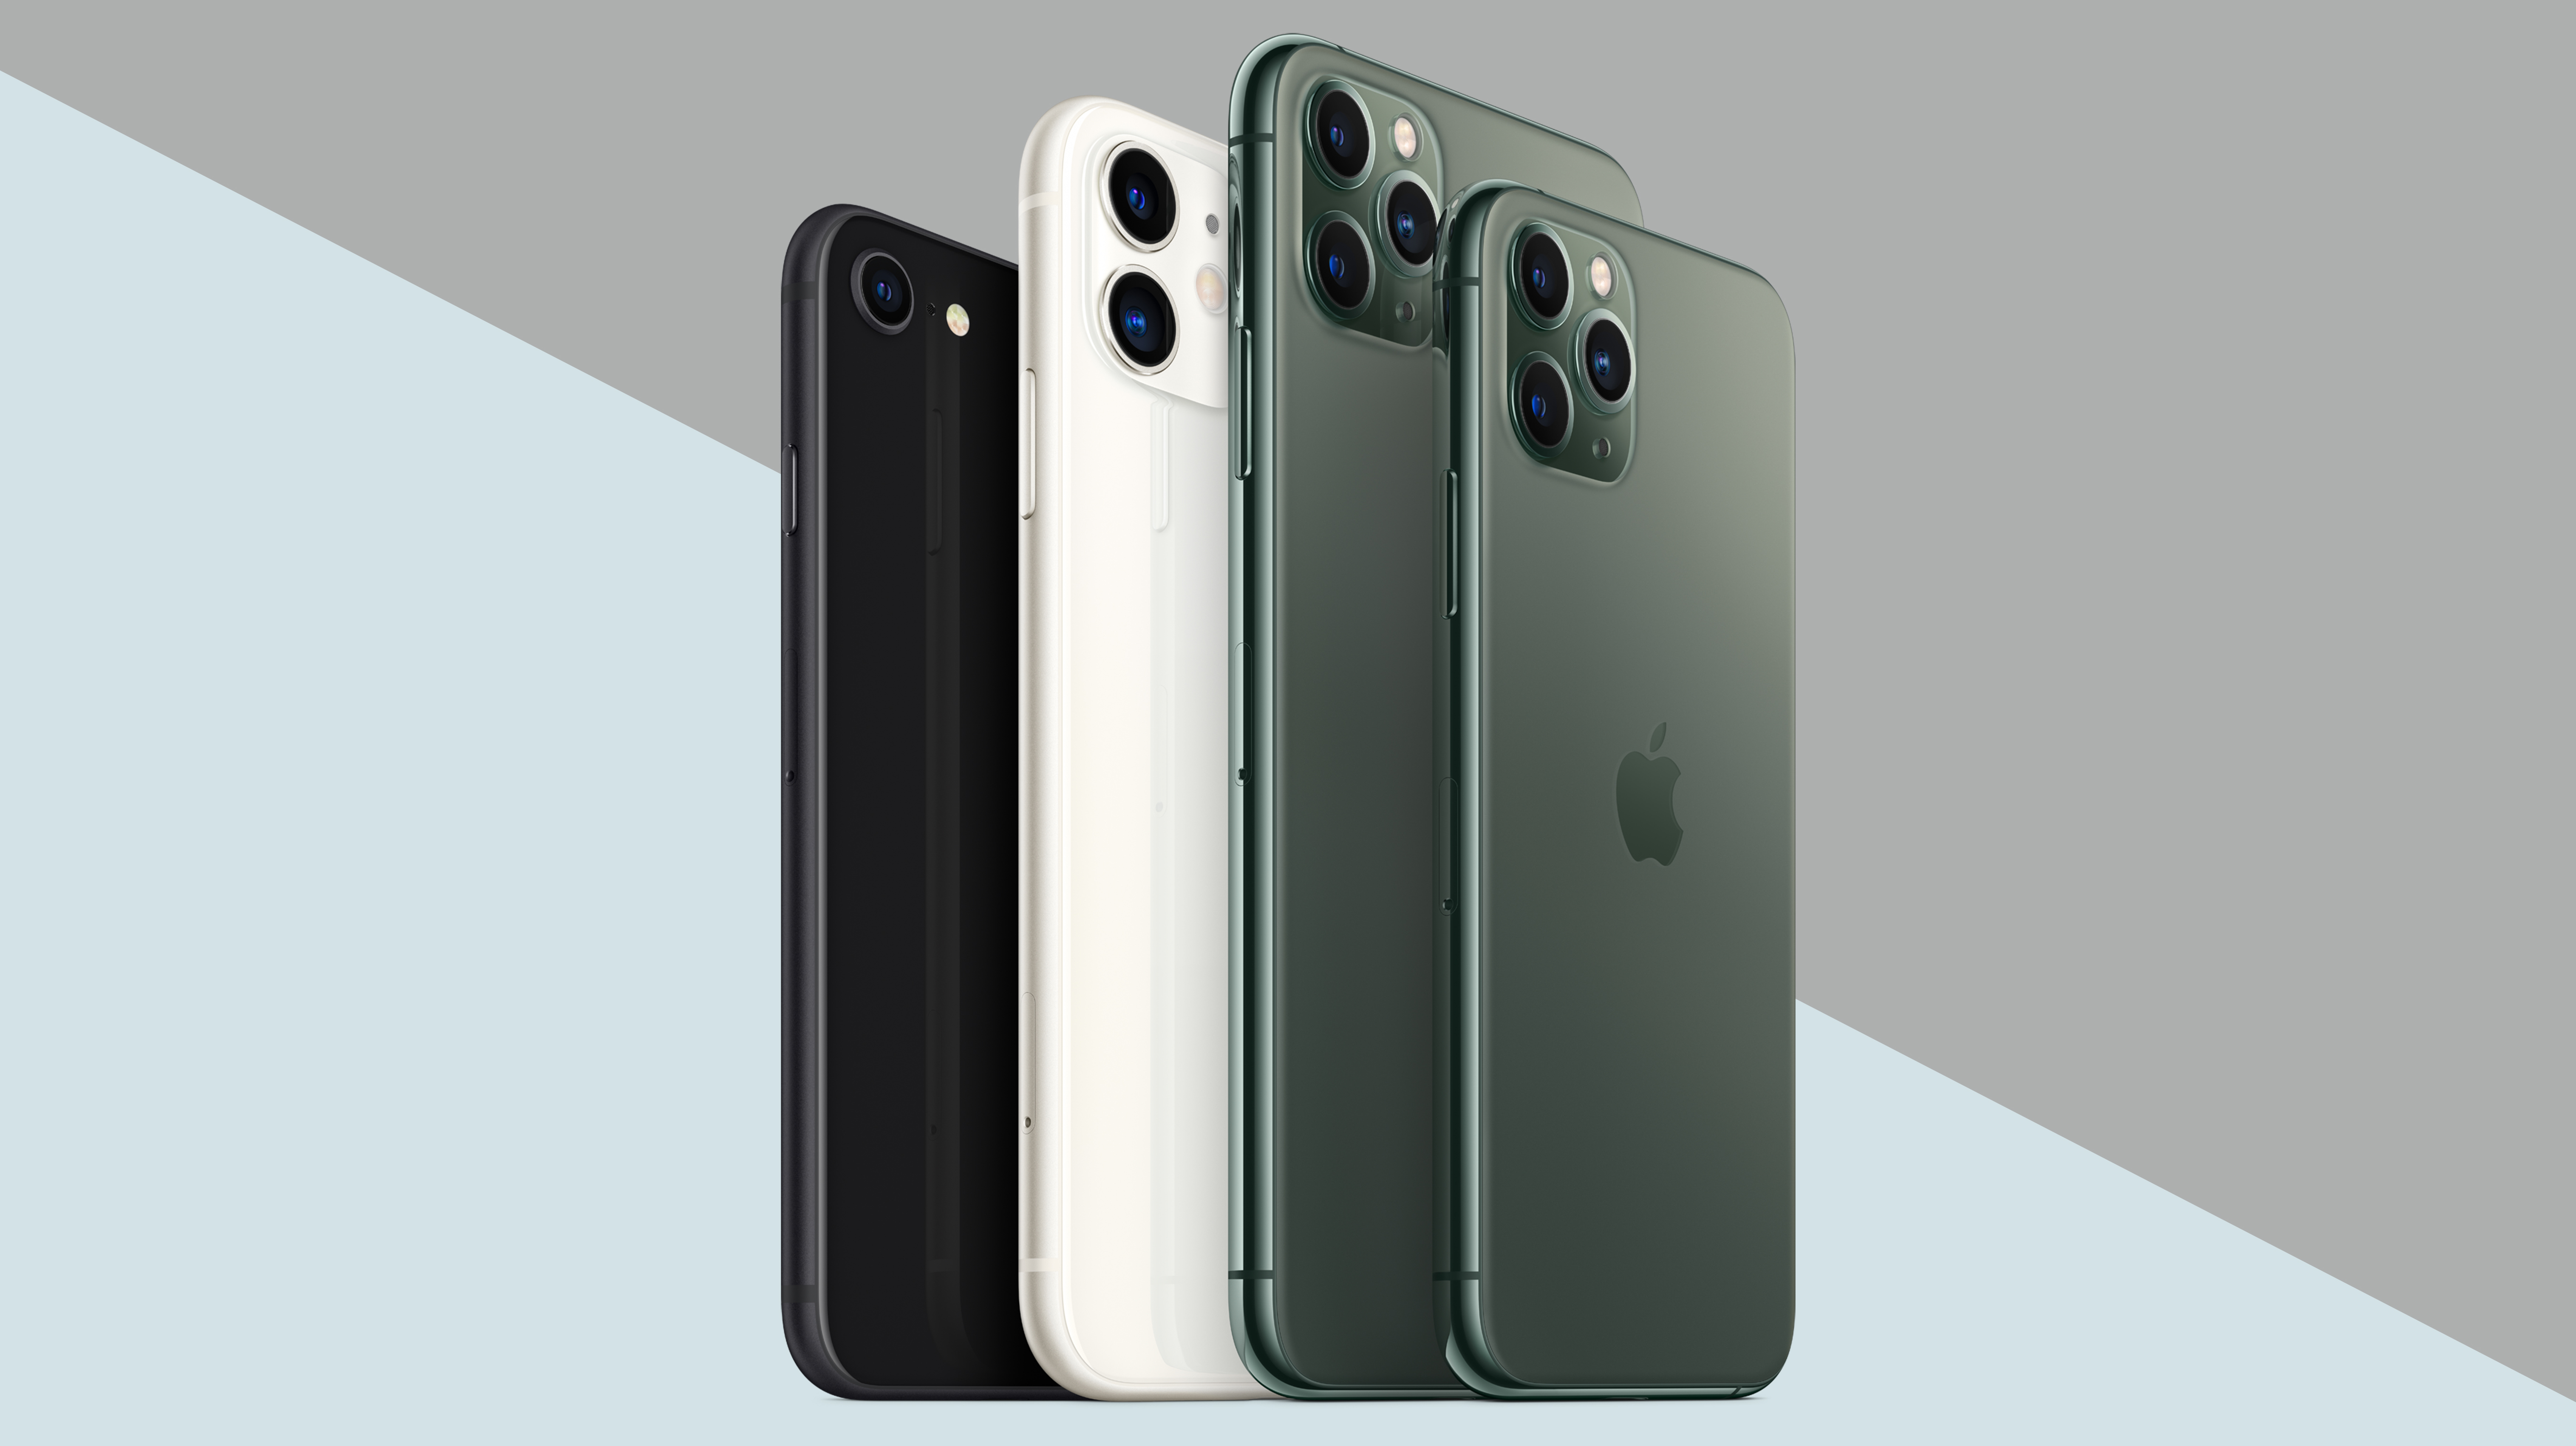 Best Iphones 2020 Comparing Iphone Se To Xr 11 11 Pro 11 Pro Max Cnn Underscored